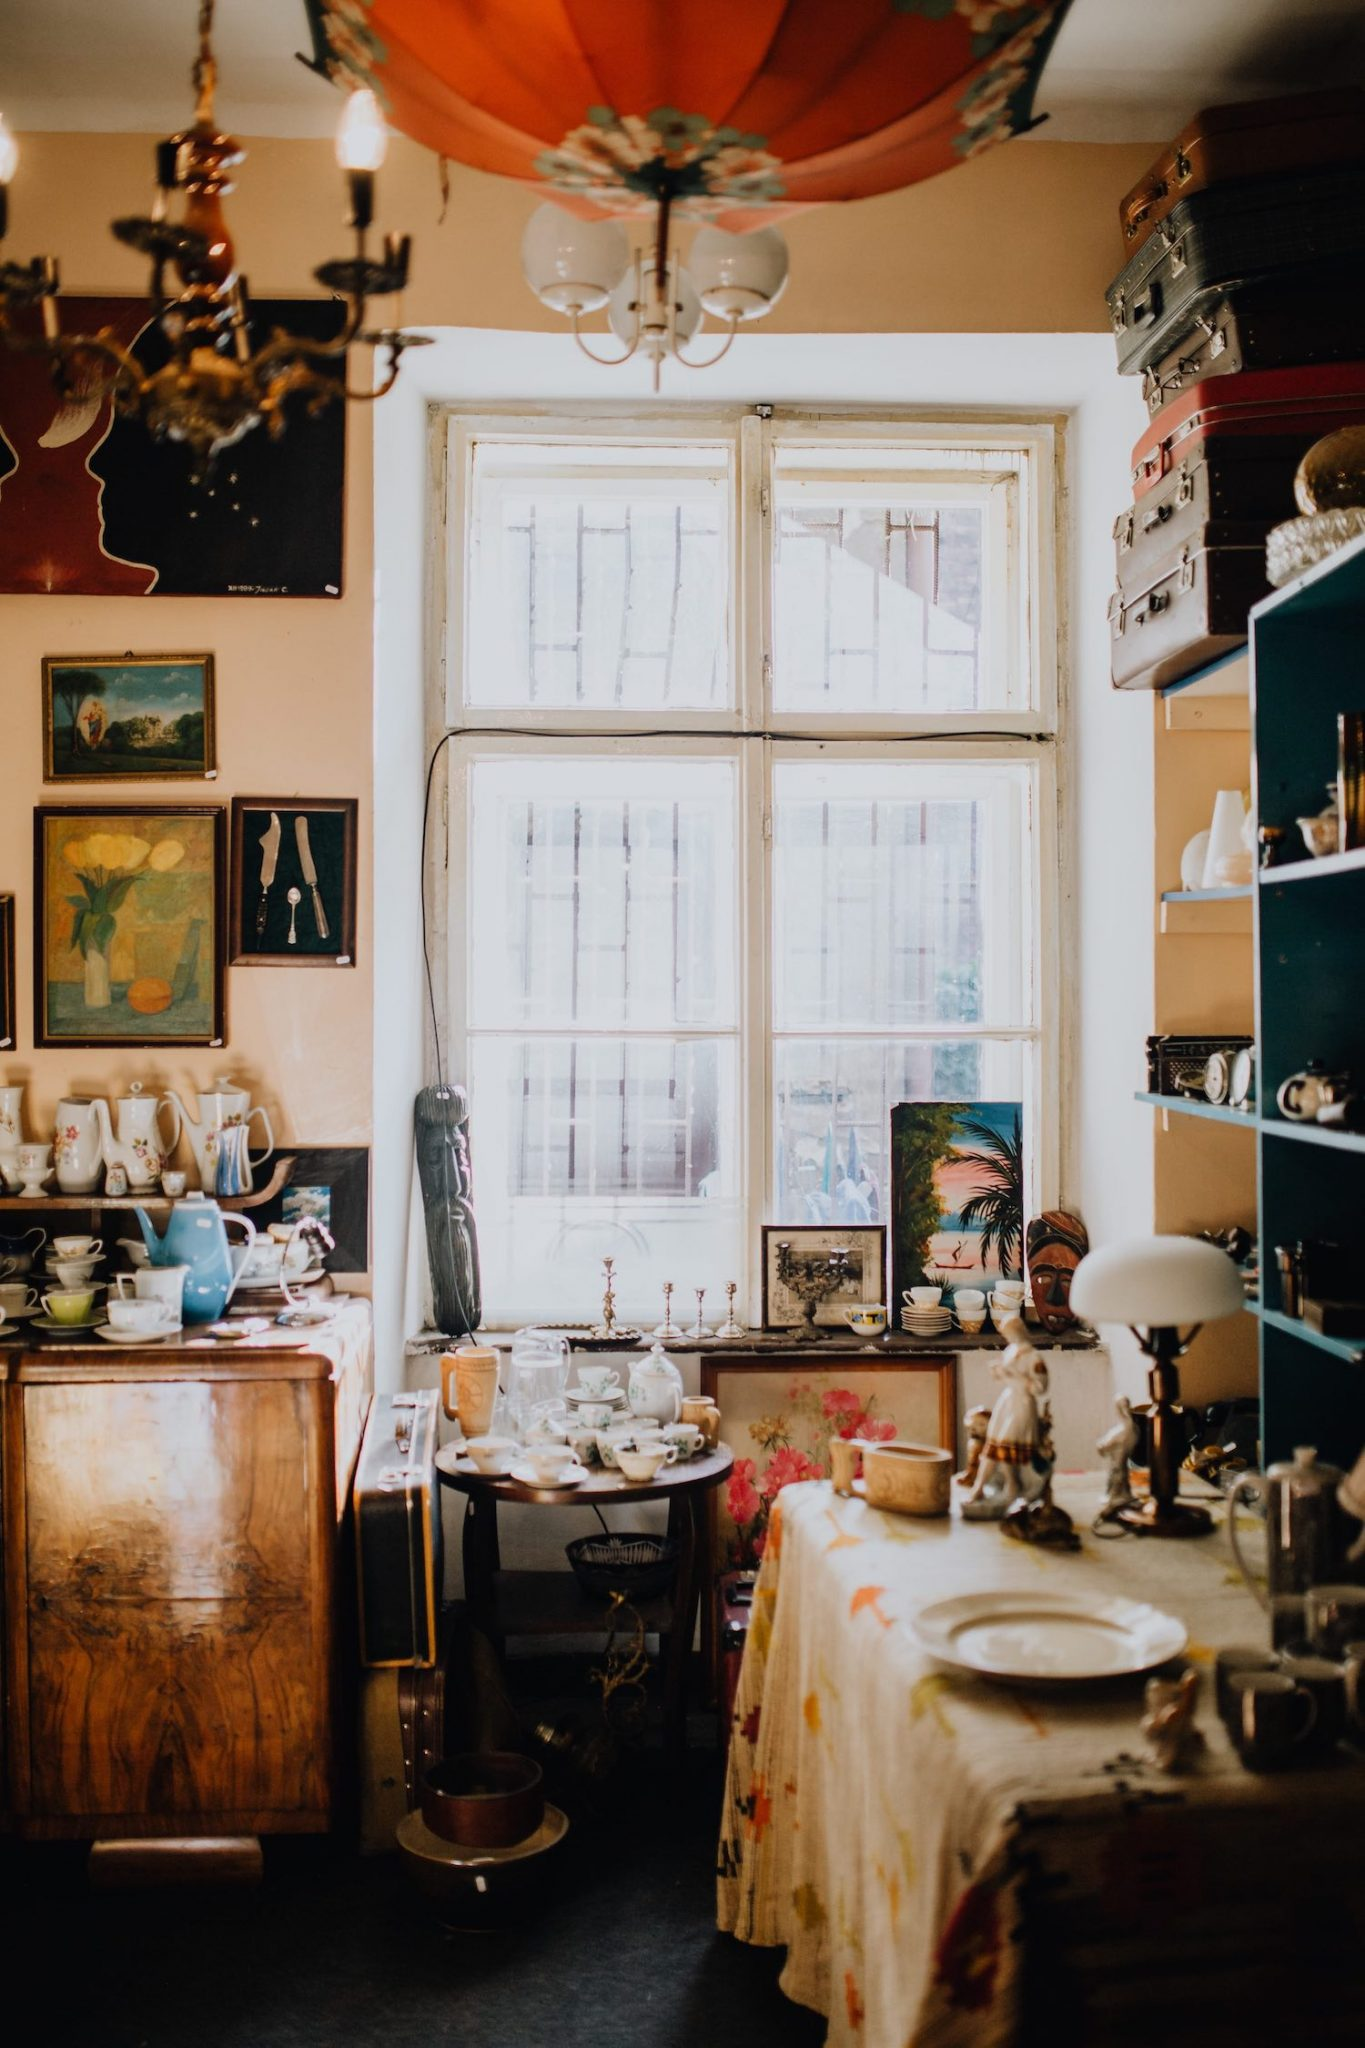 How to Properly Care for Your Antique Wooden Furniture